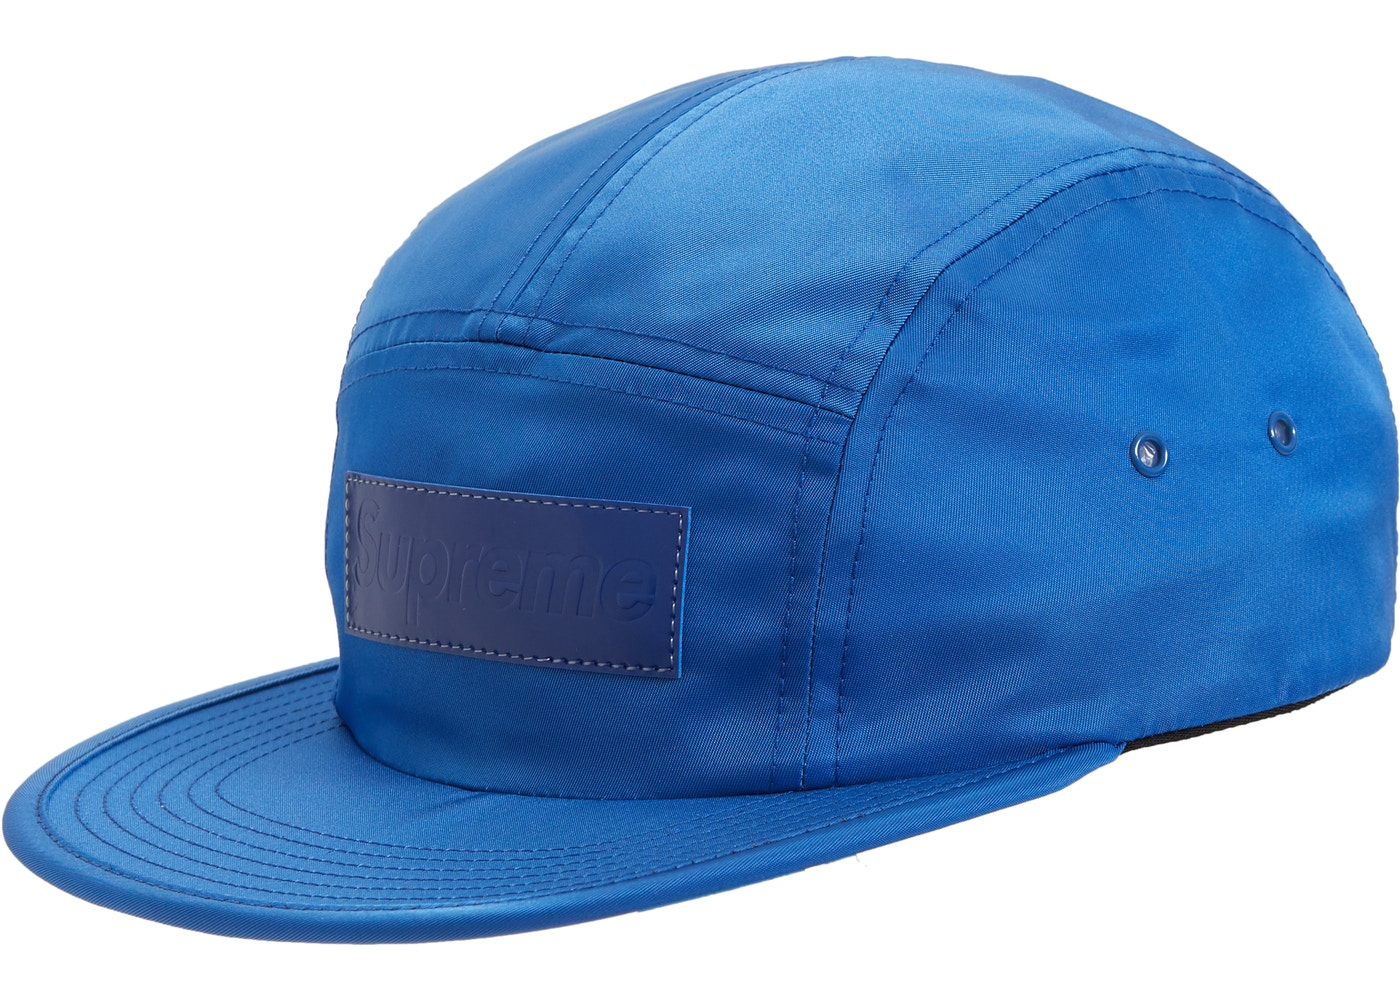 bc0344c0 Supreme Patent Leather Patch Camp Cap Royal - FW18